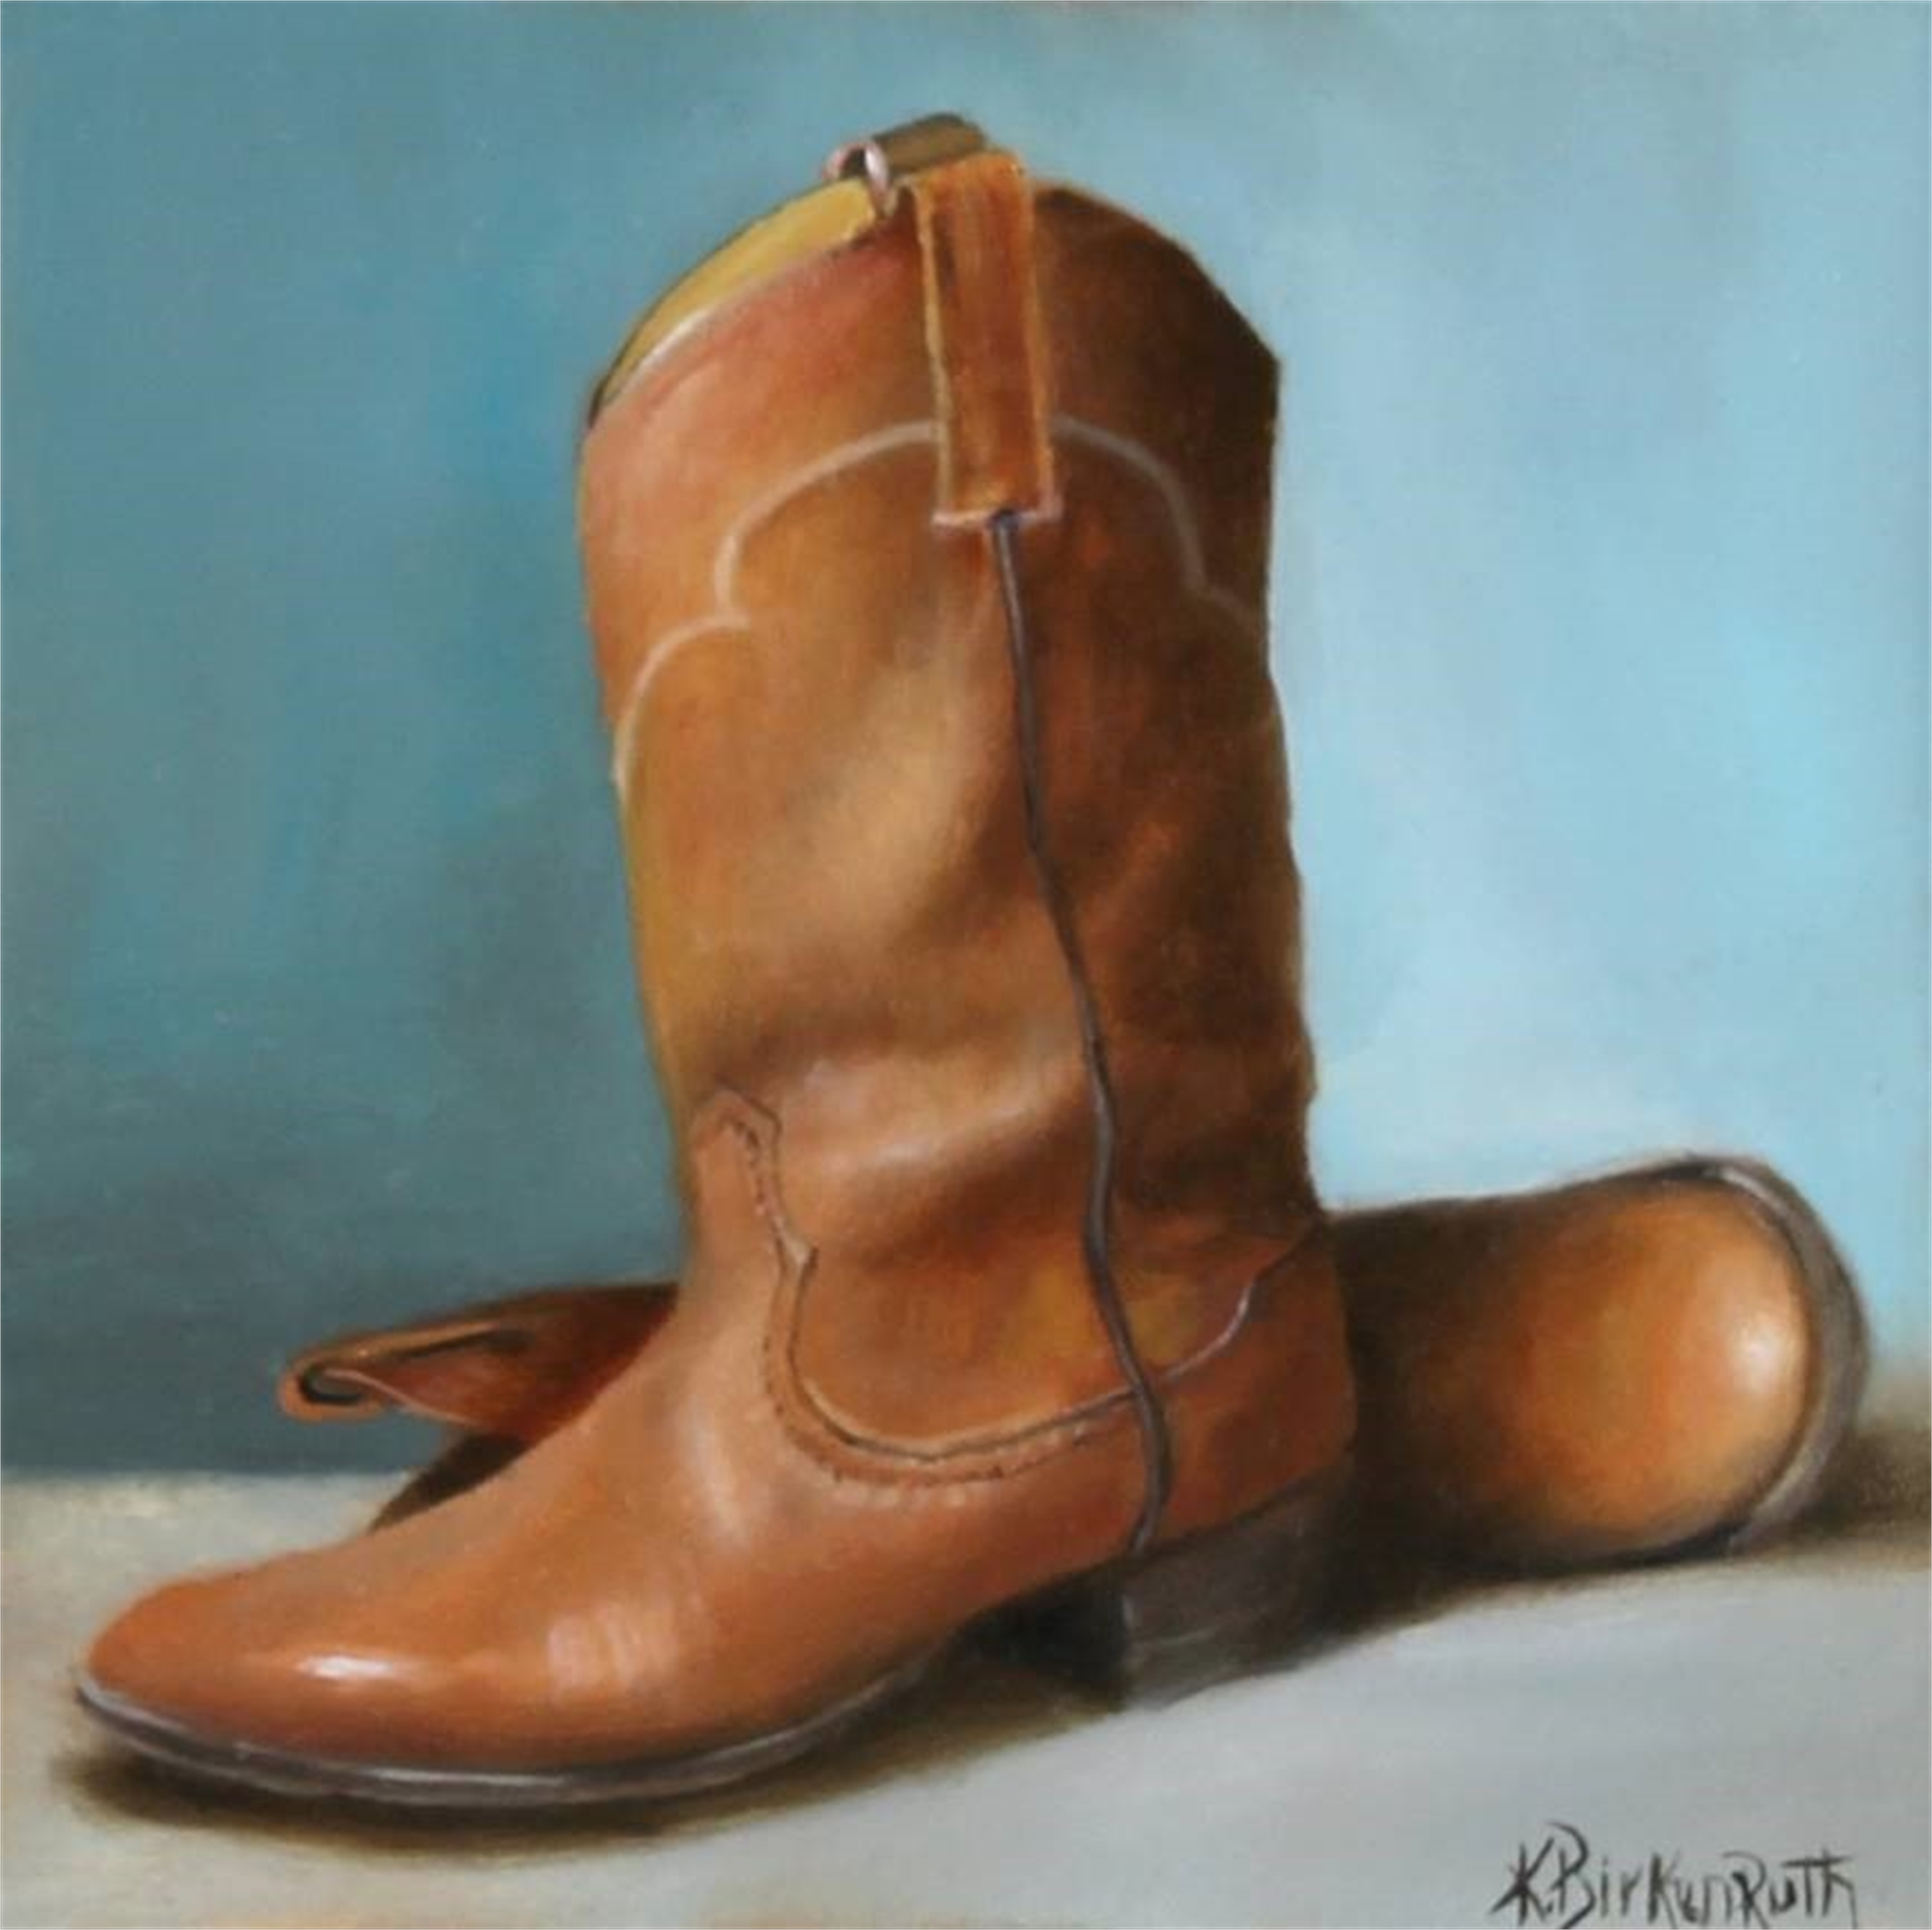 Round Toe by Kelly Birkenruth